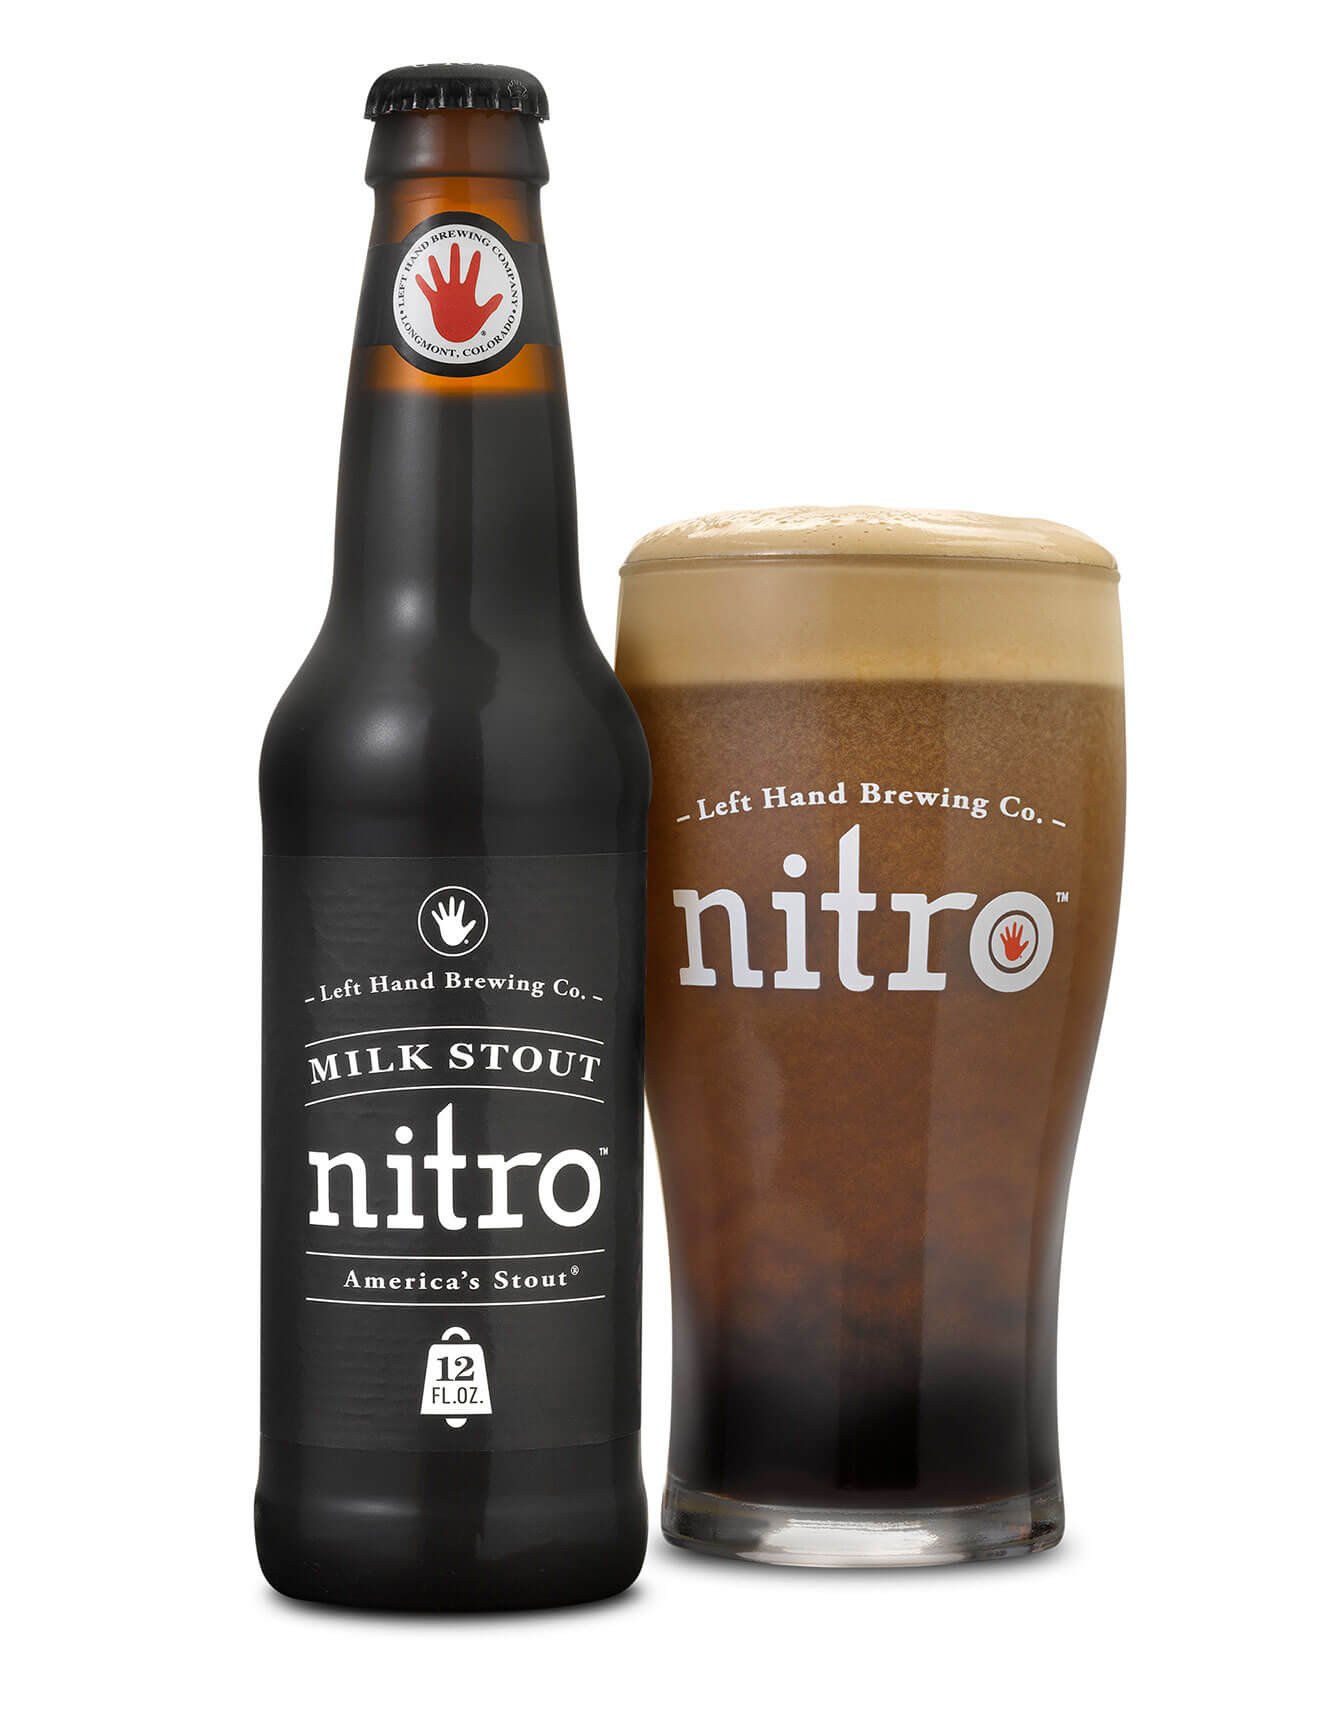 Milk Stout Nitro Bottle and Glass